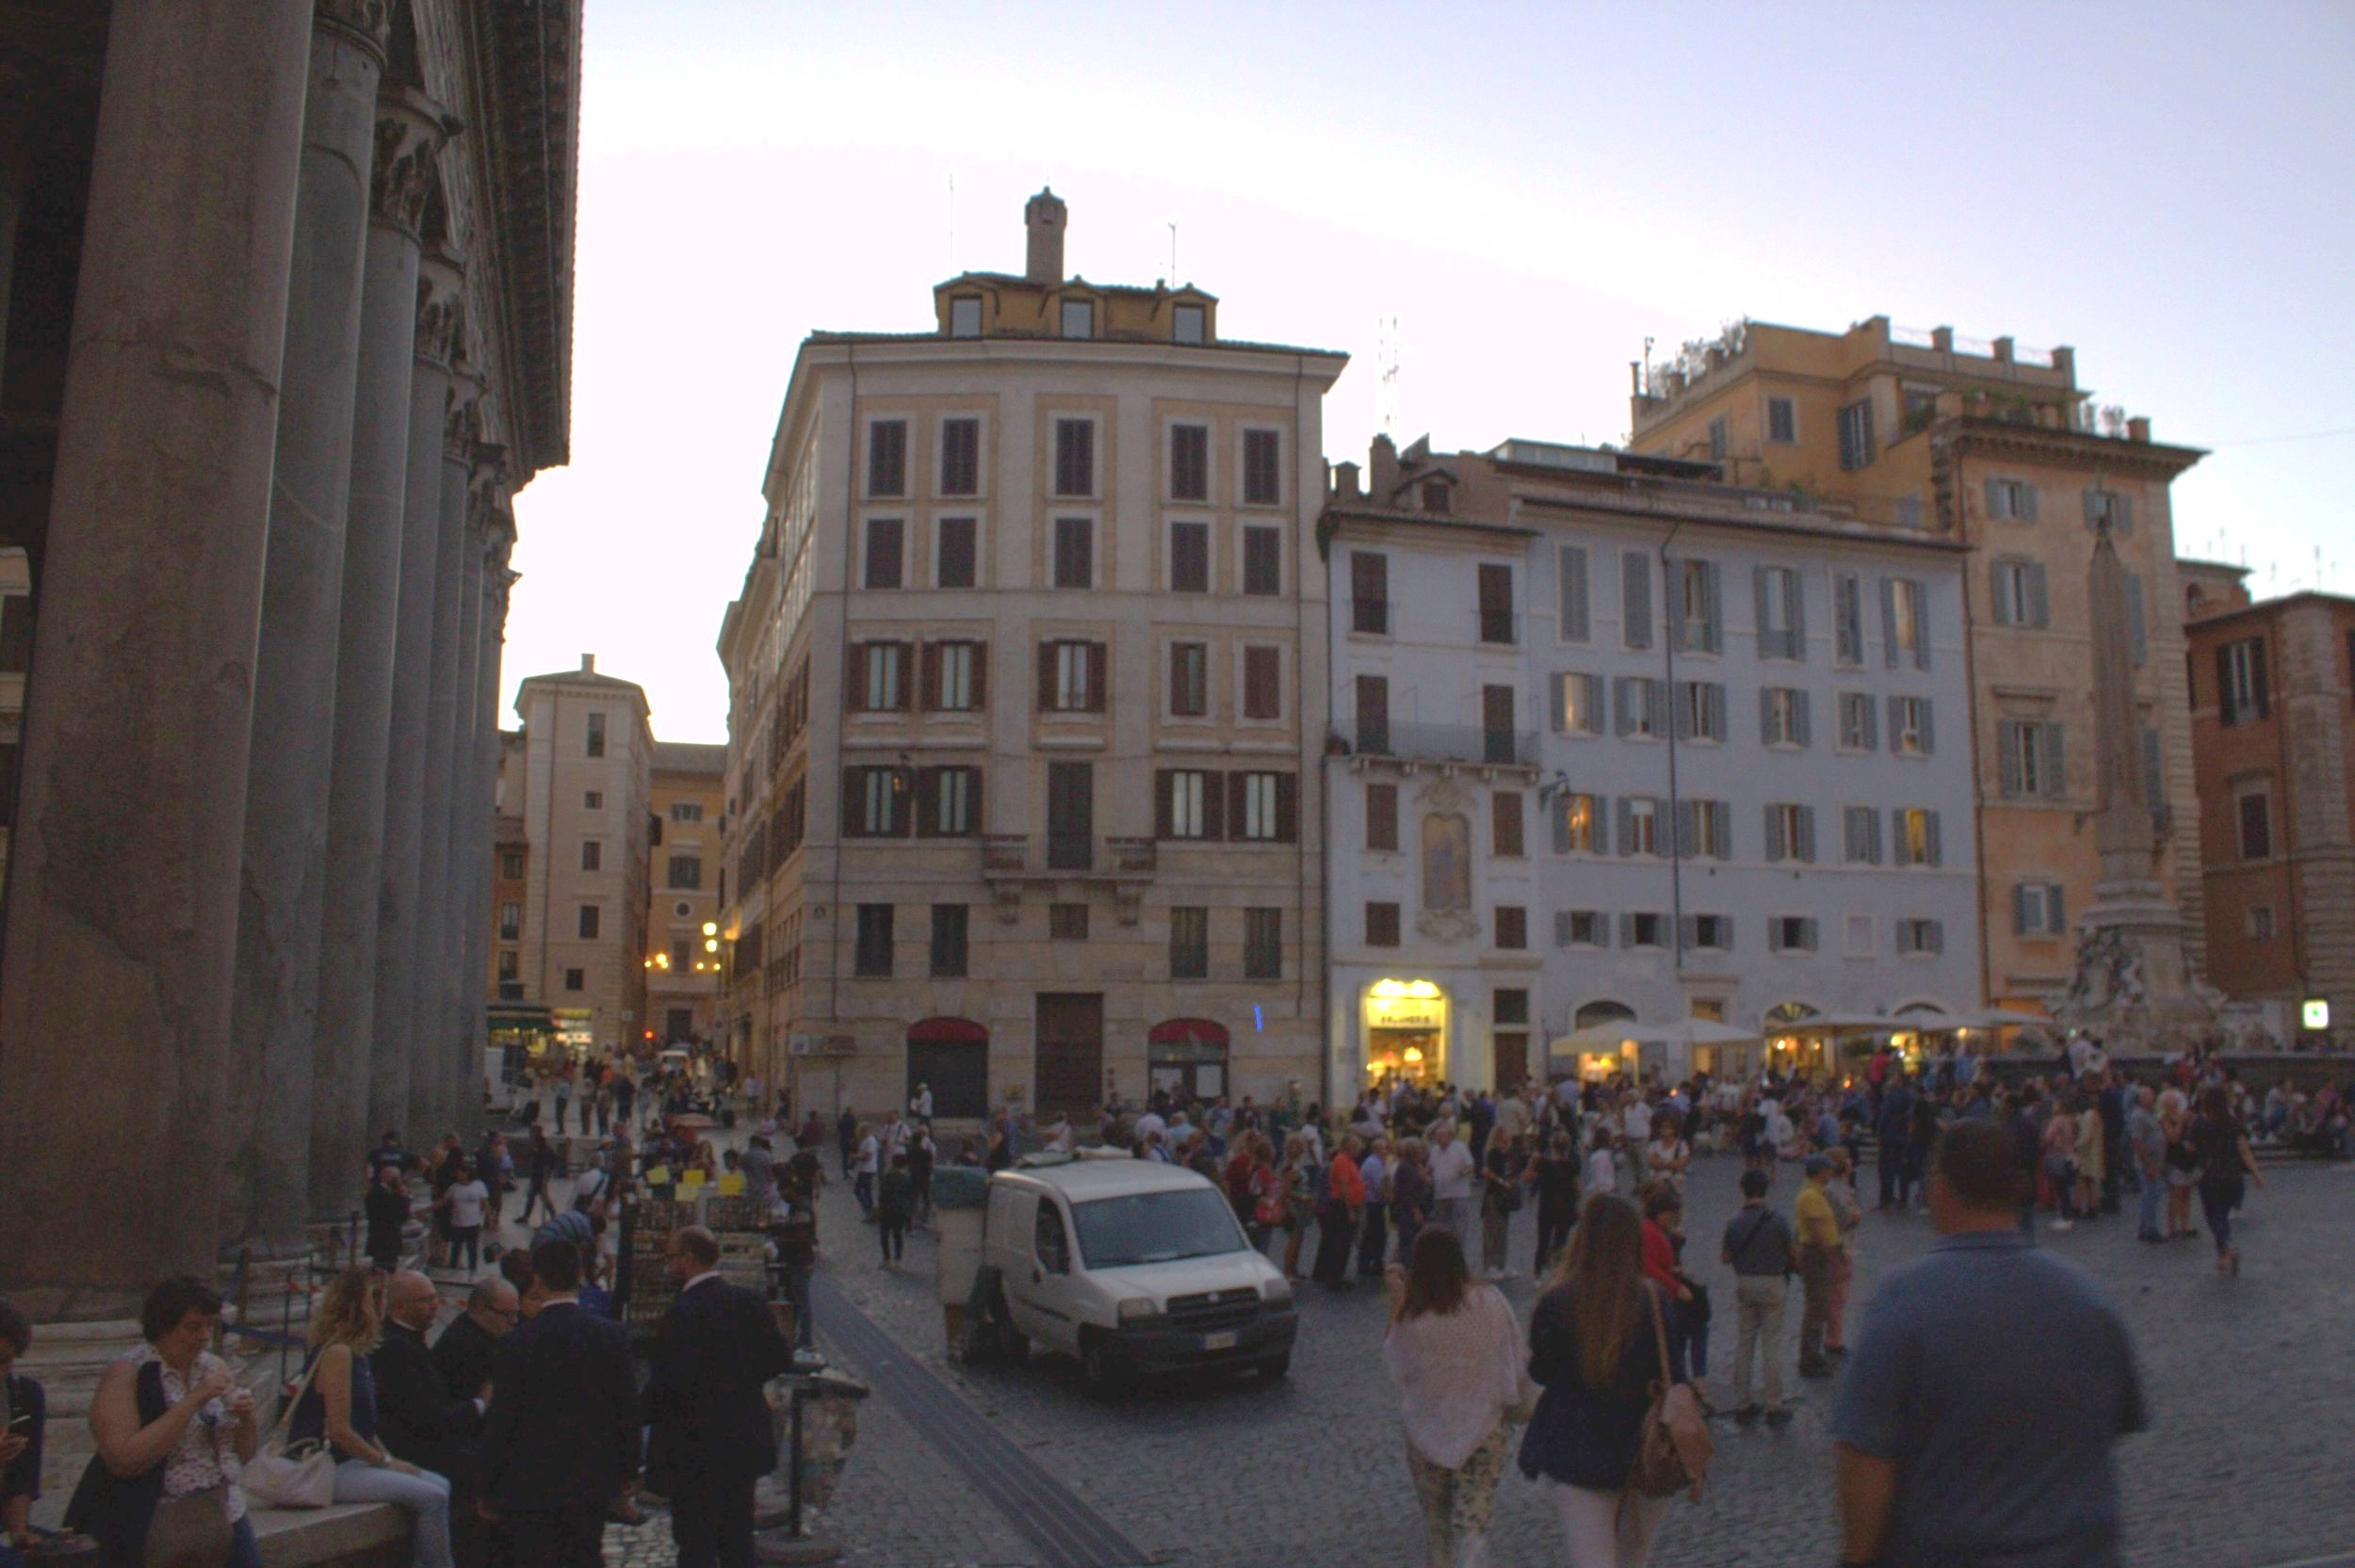 A busy Piazza, the Pantheon is gathered by many for drinks and food any time of the day.